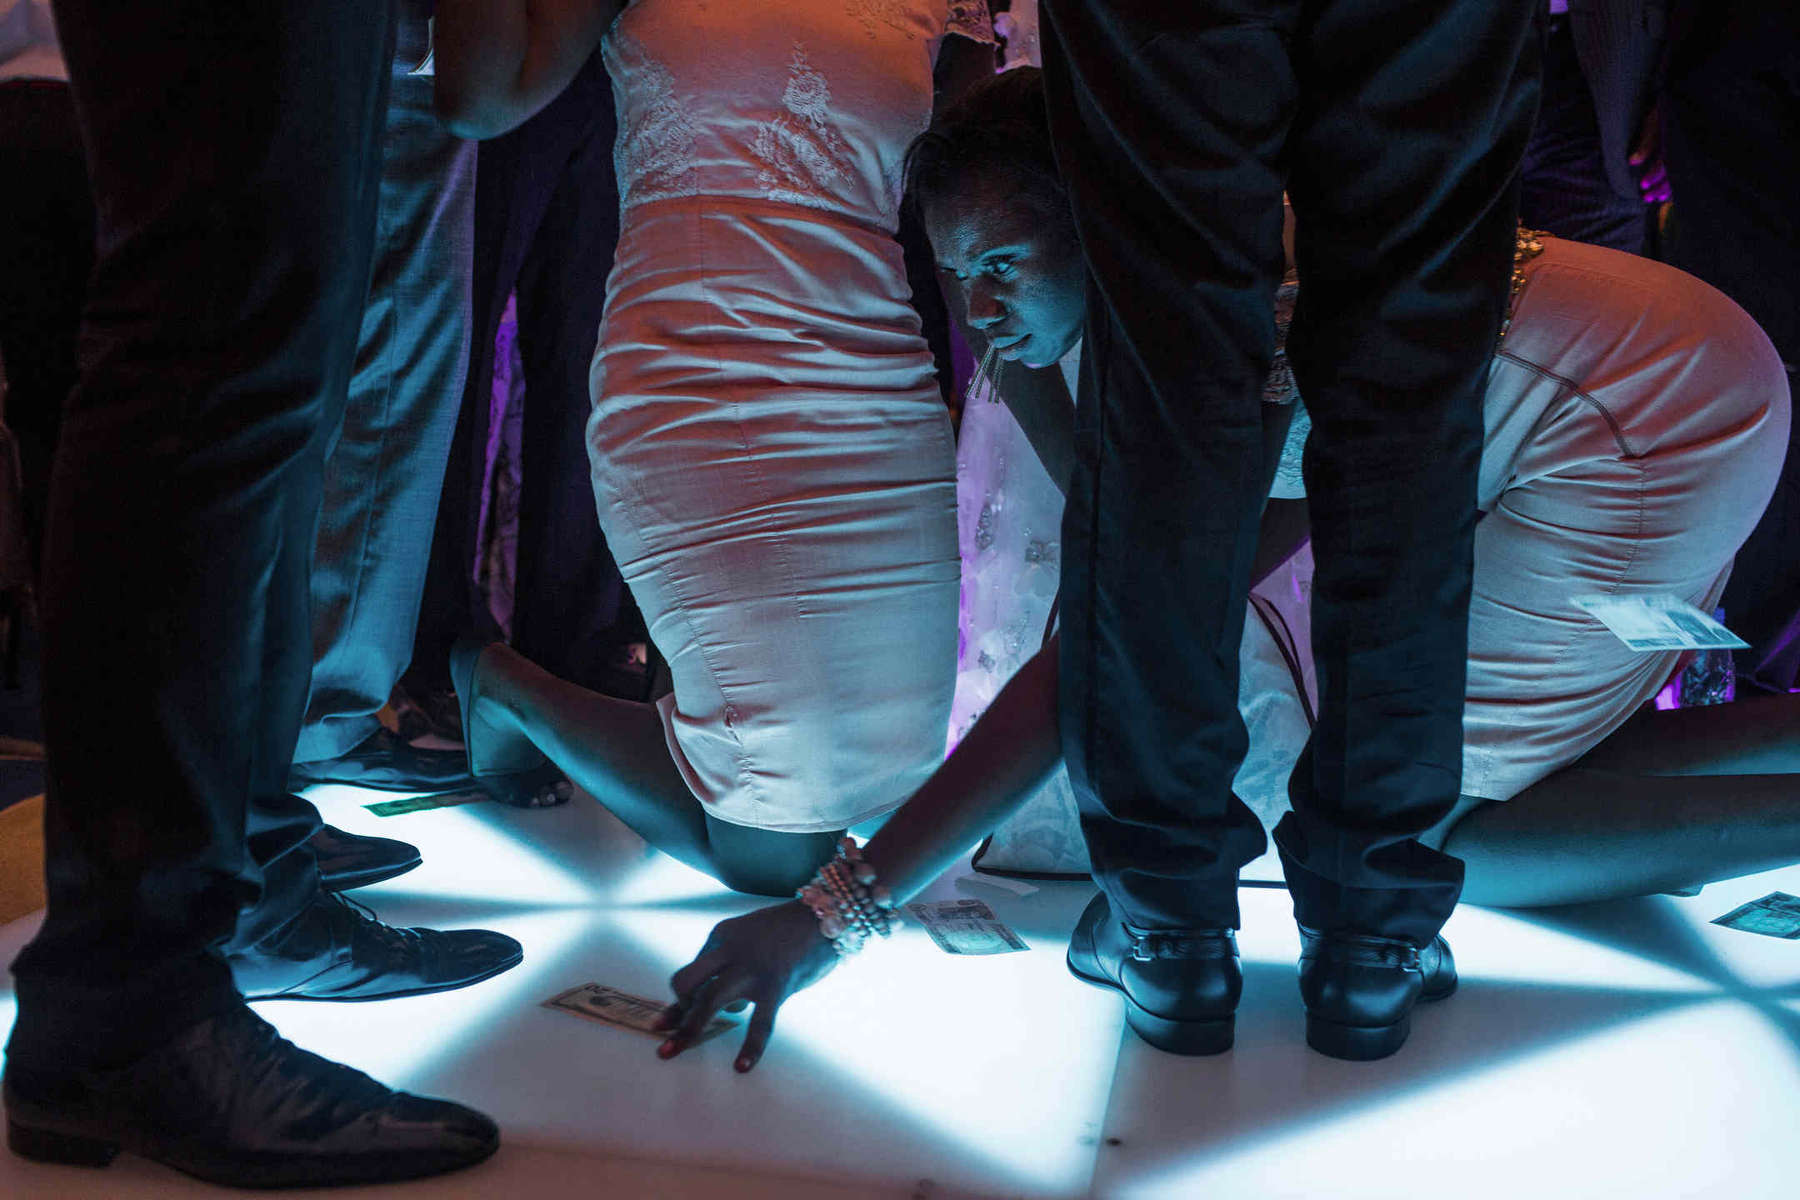 A bridesmaid collects {quote}spray{quote} -  Naira notes (and sometimes dollars too) thrown at the couple as they dance. While spraying is technically illegal and considered an abuse of currency by the Nigerian government, the practice is common and shows the importance of displaying wealth and excess during celebrations.